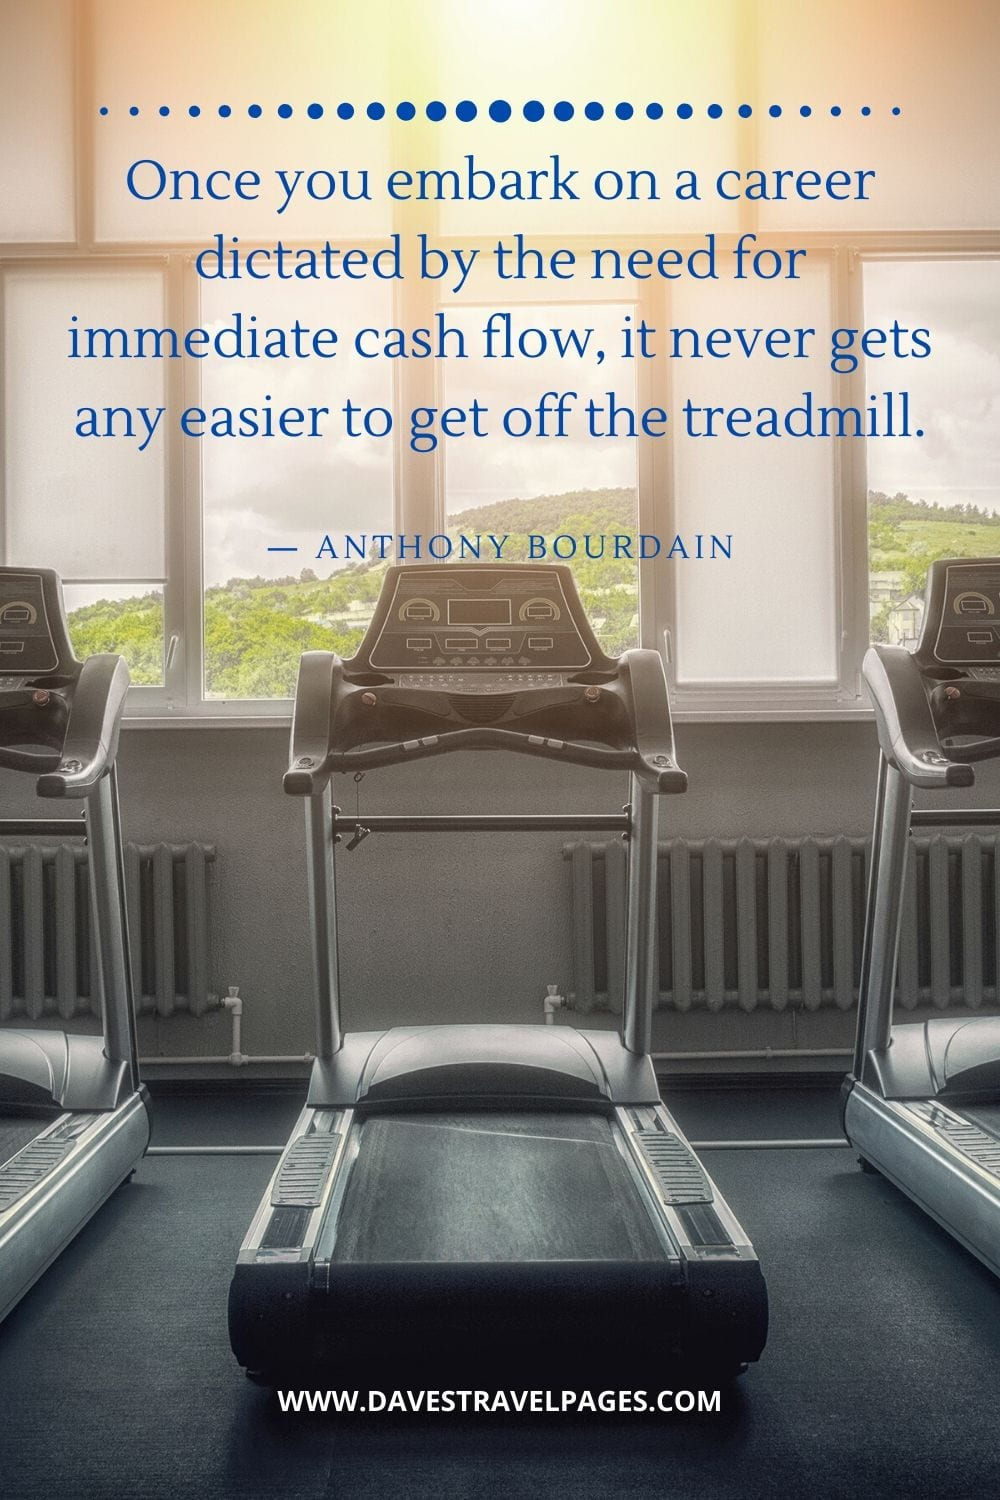 """""""Once you embark on a career dictated by the need for immediate cash flow, it never gets any easier to get off the treadmill.""""― Anthony Bourdain business quote"""